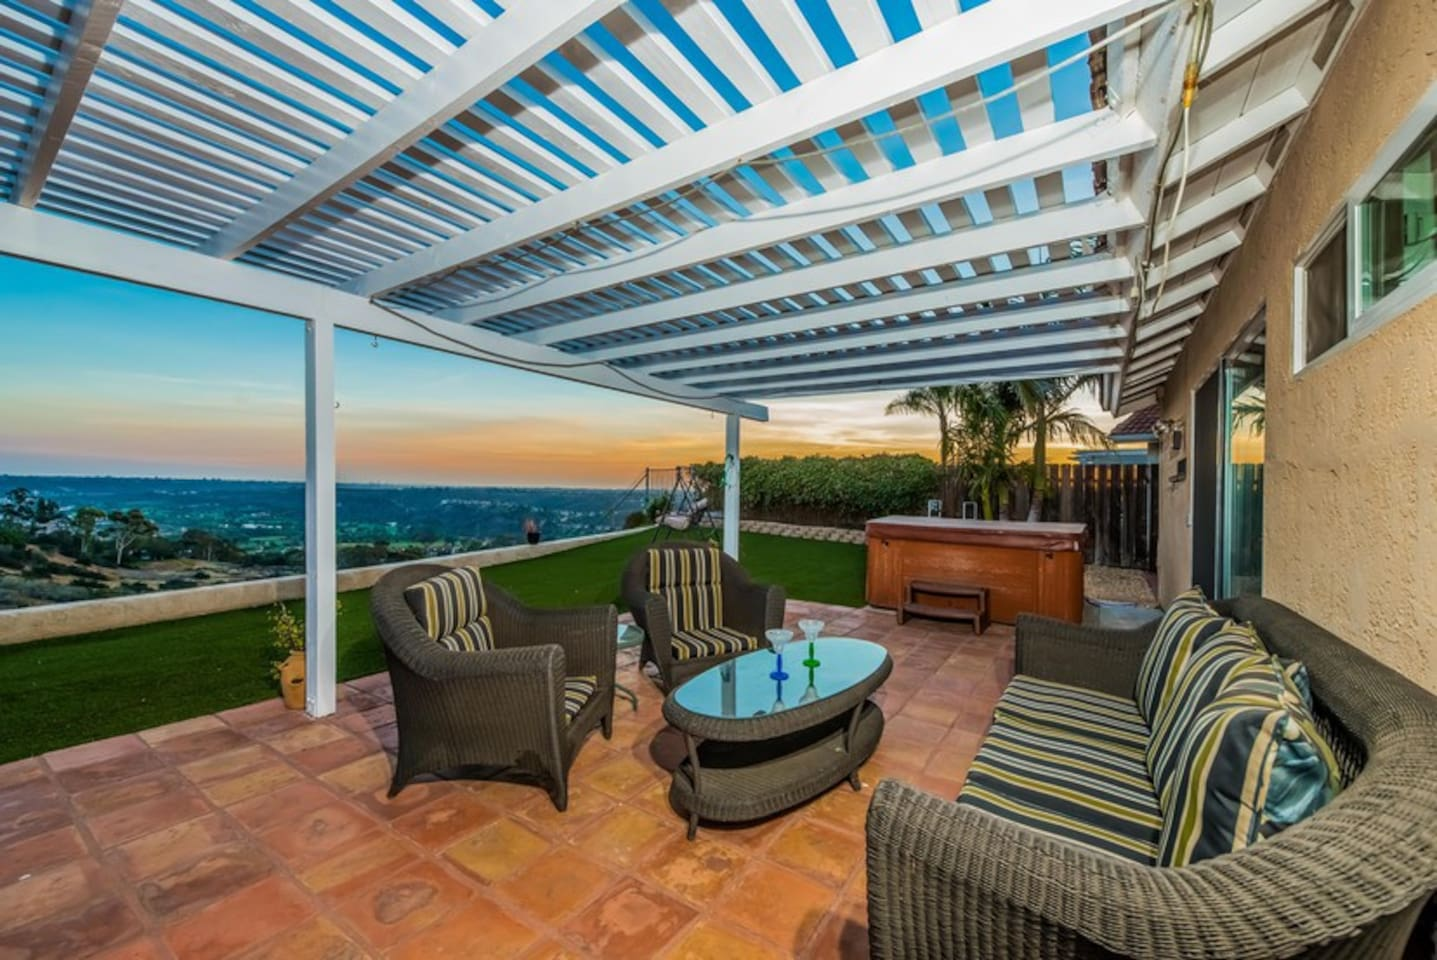 Amazing sunset views from the back patio, relax in the private hot tub too!